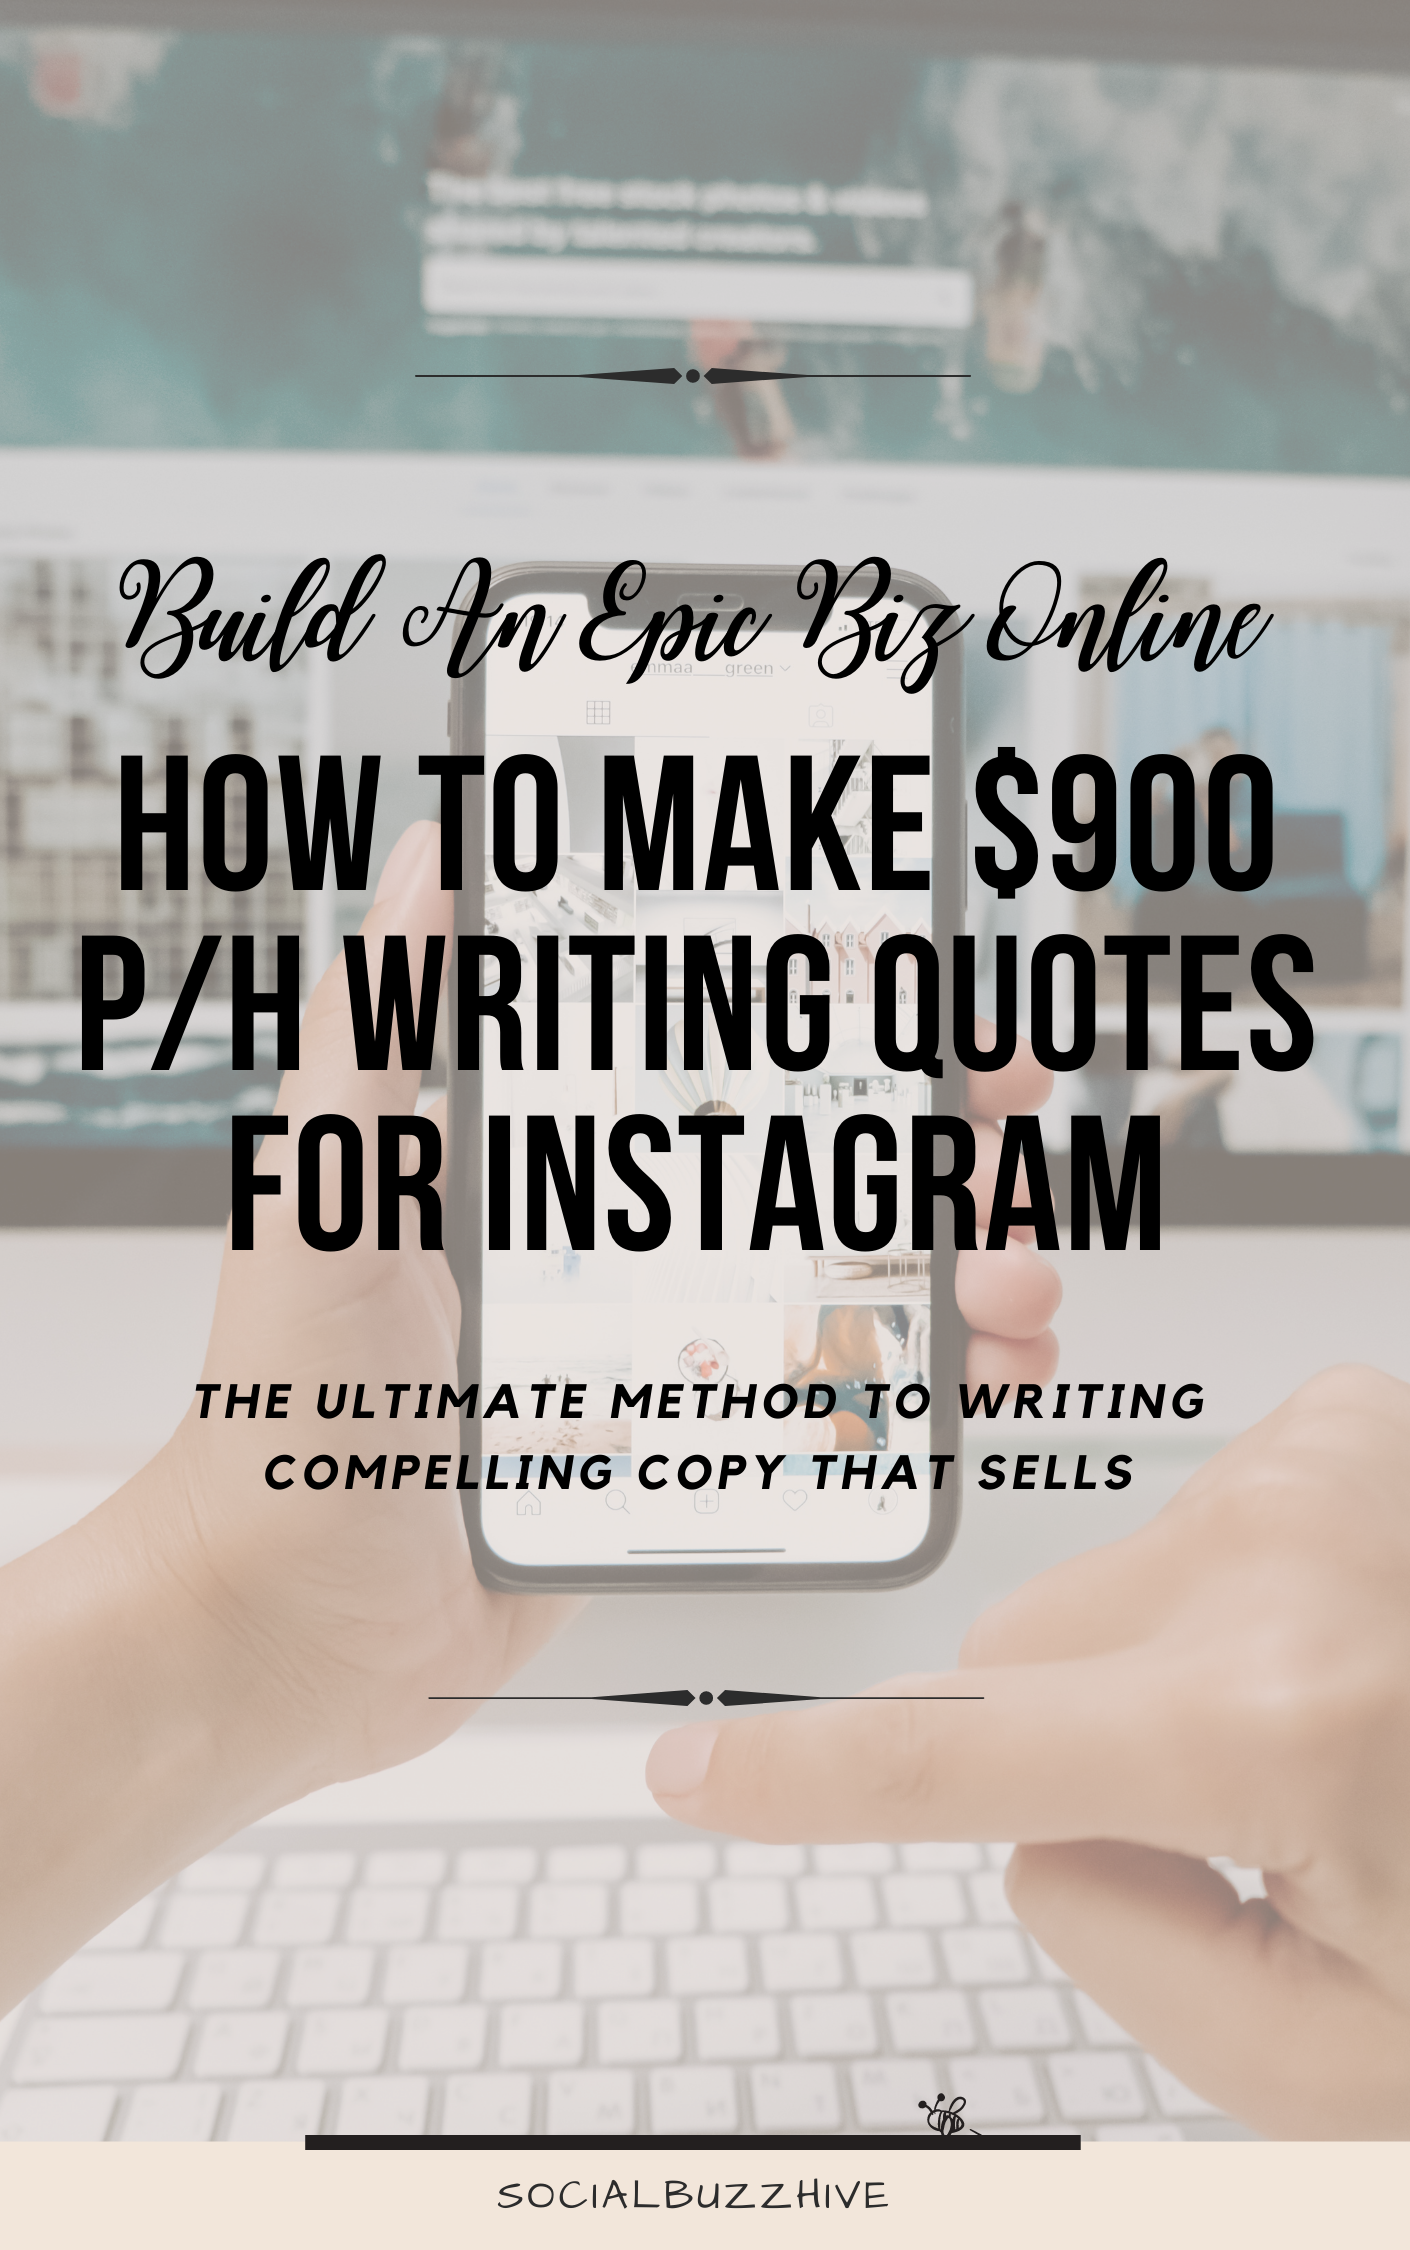 how to make $900 per hour writing for instagram